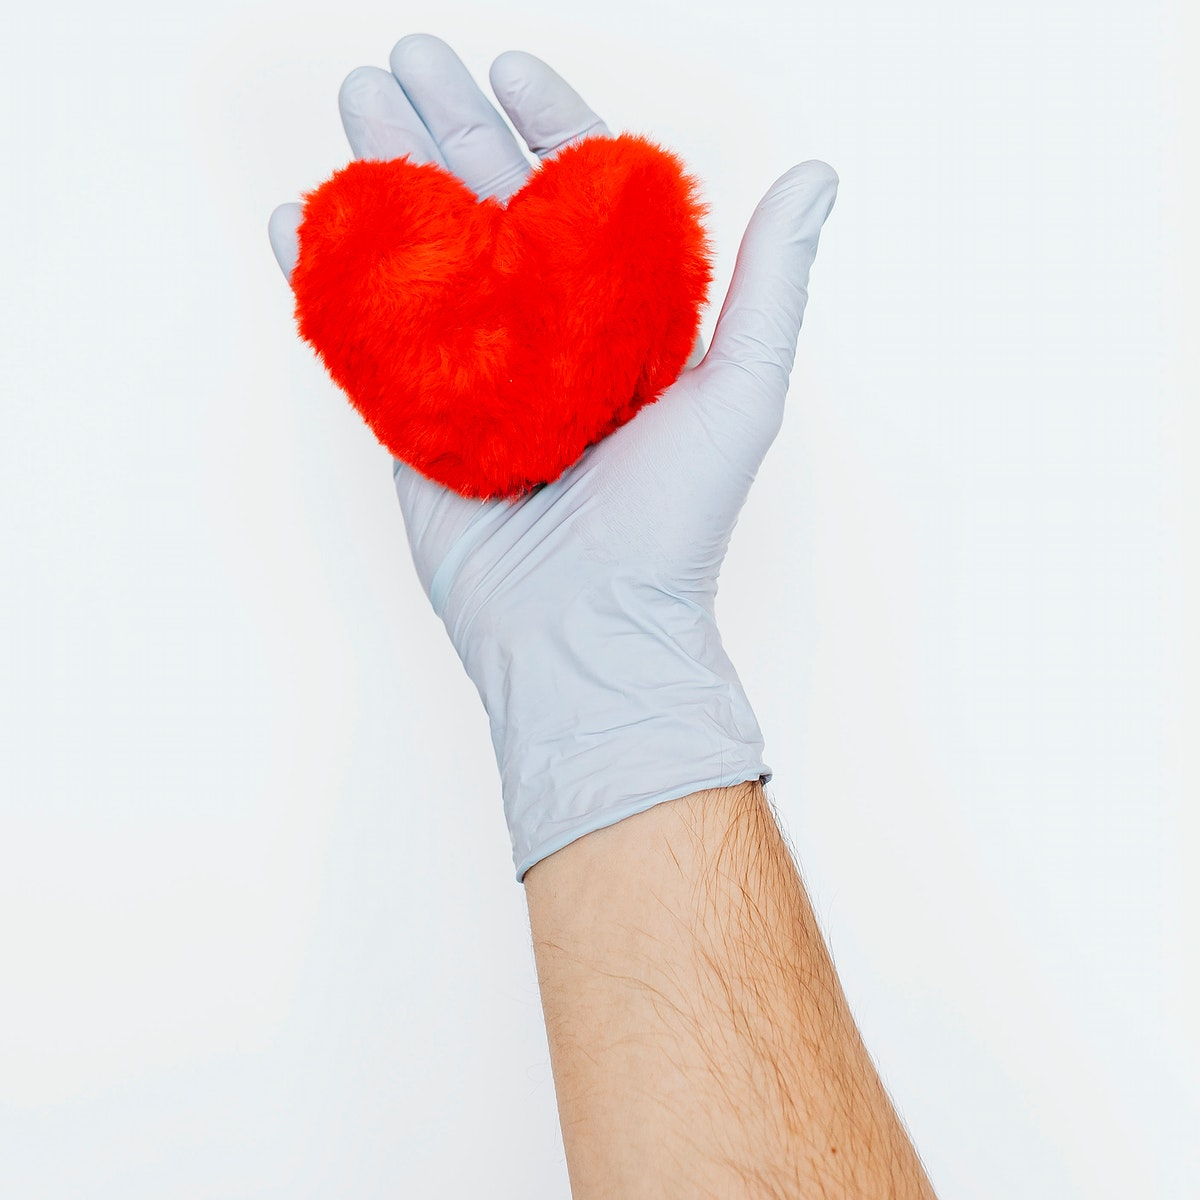 Gloved hand holding a fluffy red heart